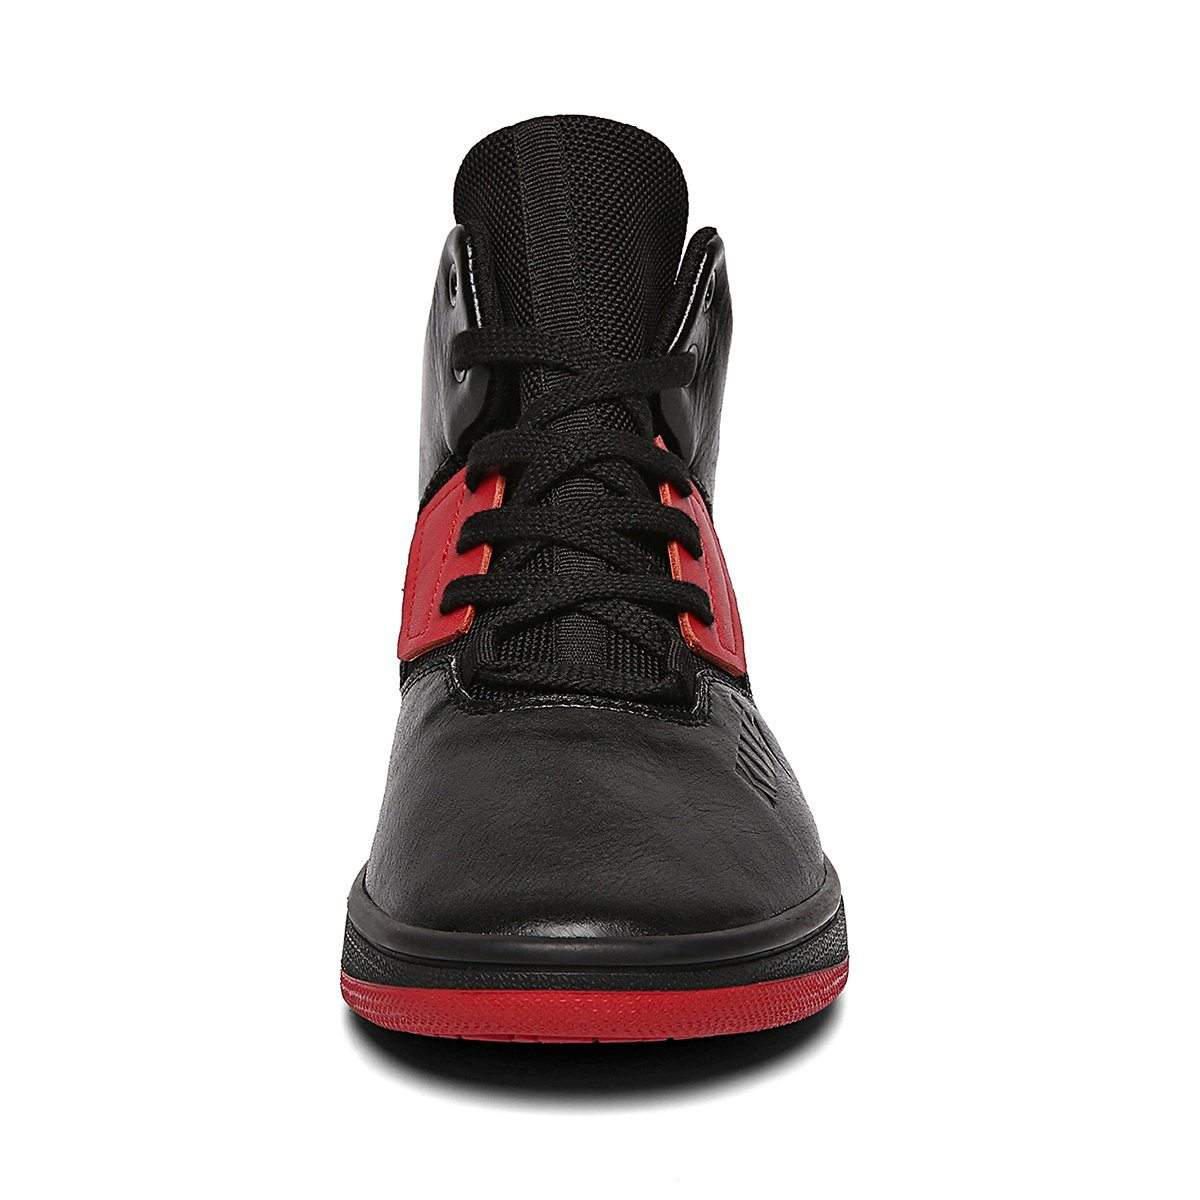 Solered Black High Tops